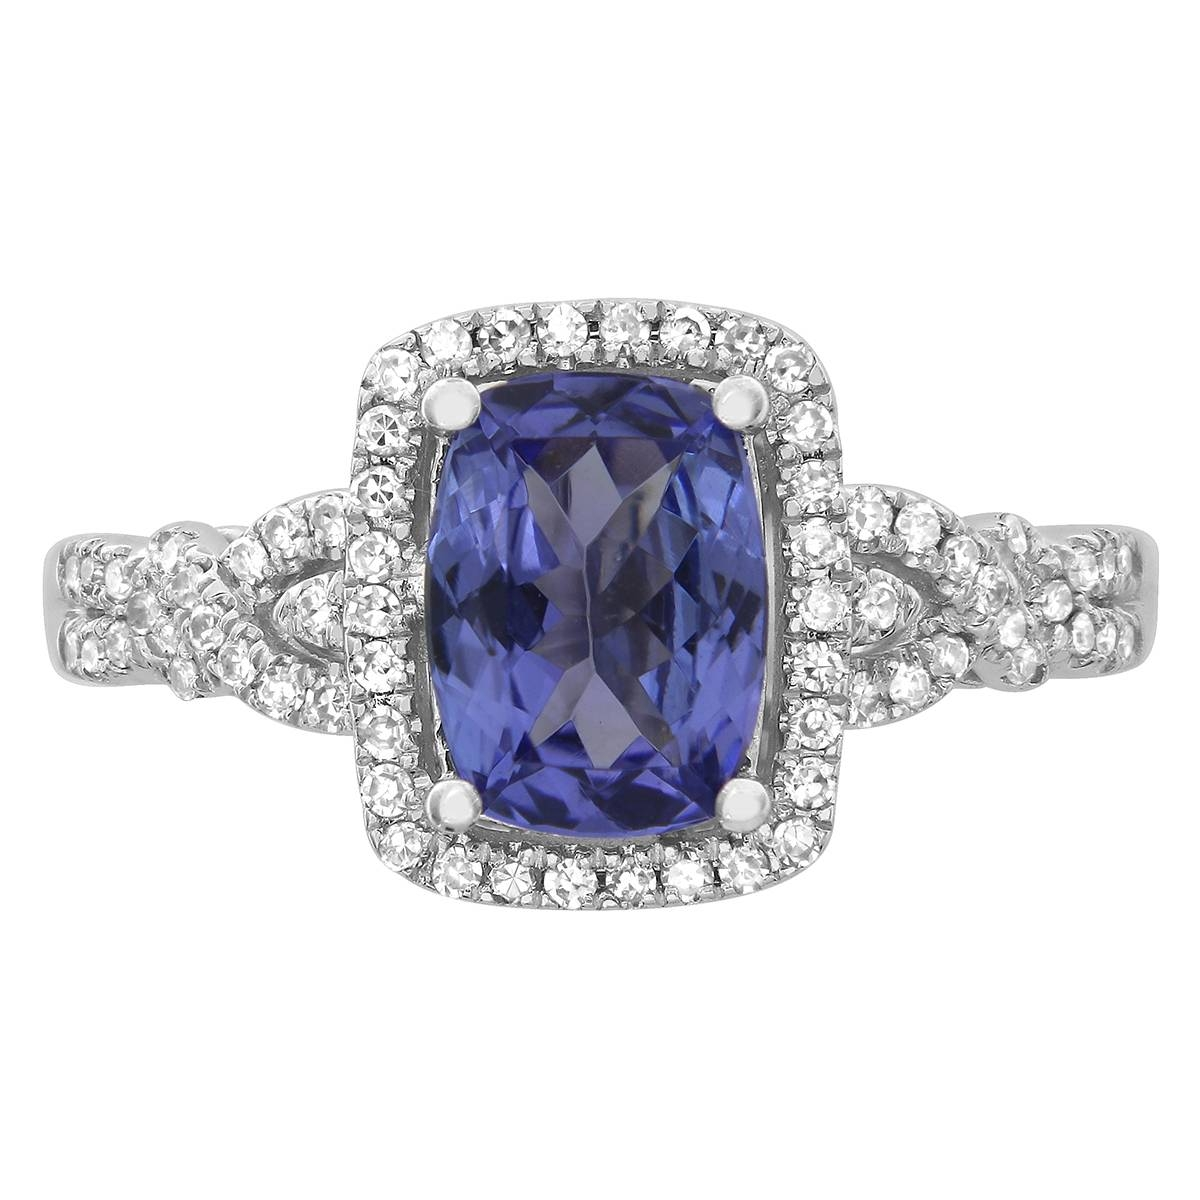 10K White Gold Cushion Cut Tanzanite And Diamond Engagement Ring With Regard To Engagement Rings Tanzanite (View 3 of 15)